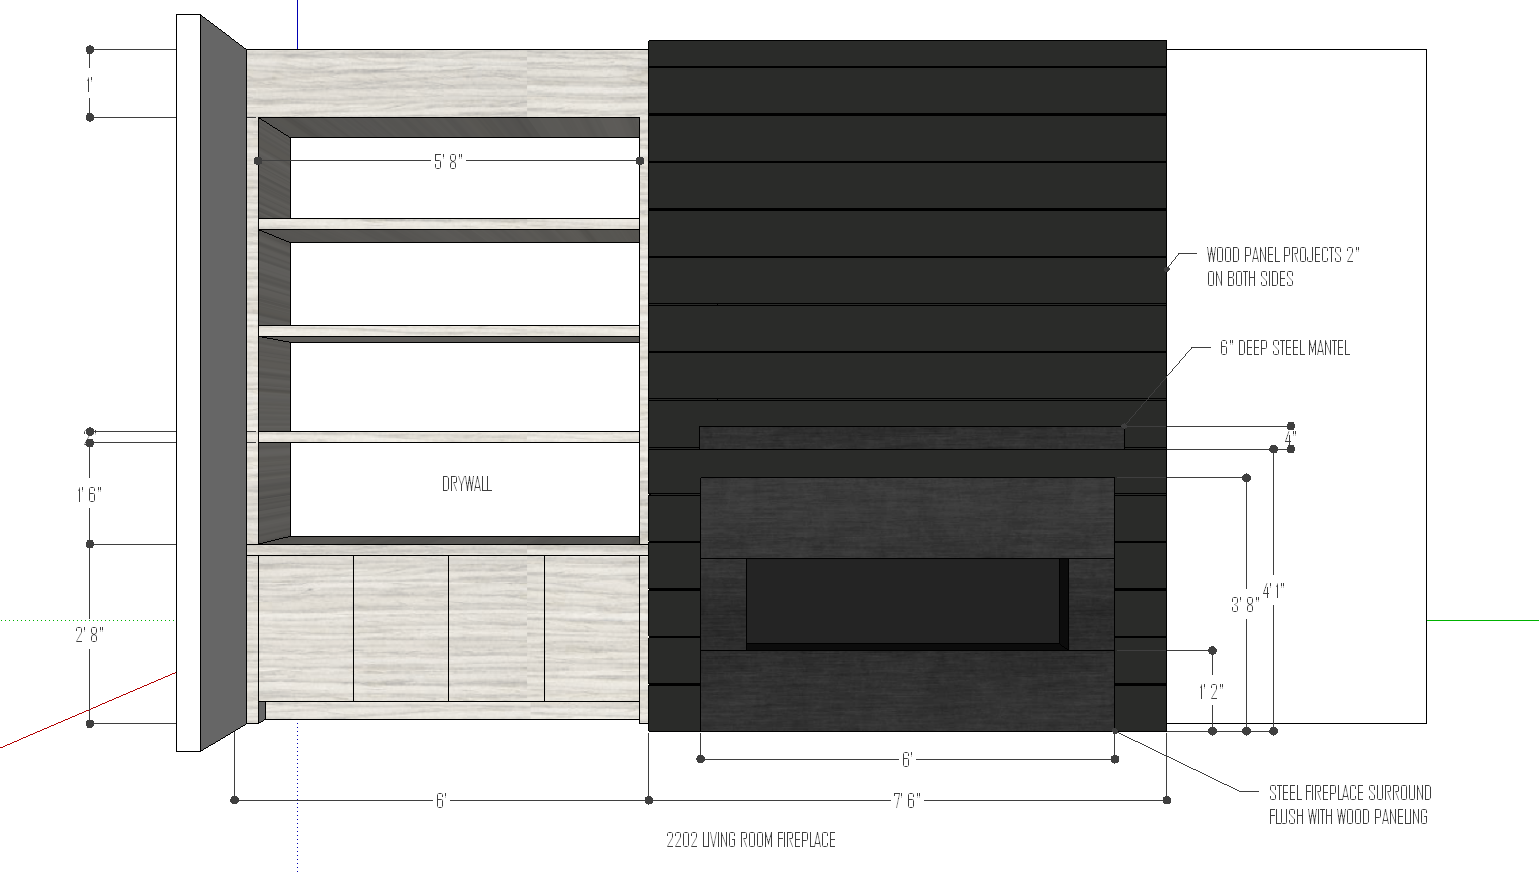 2202 Living room fireplace elevation copy.png